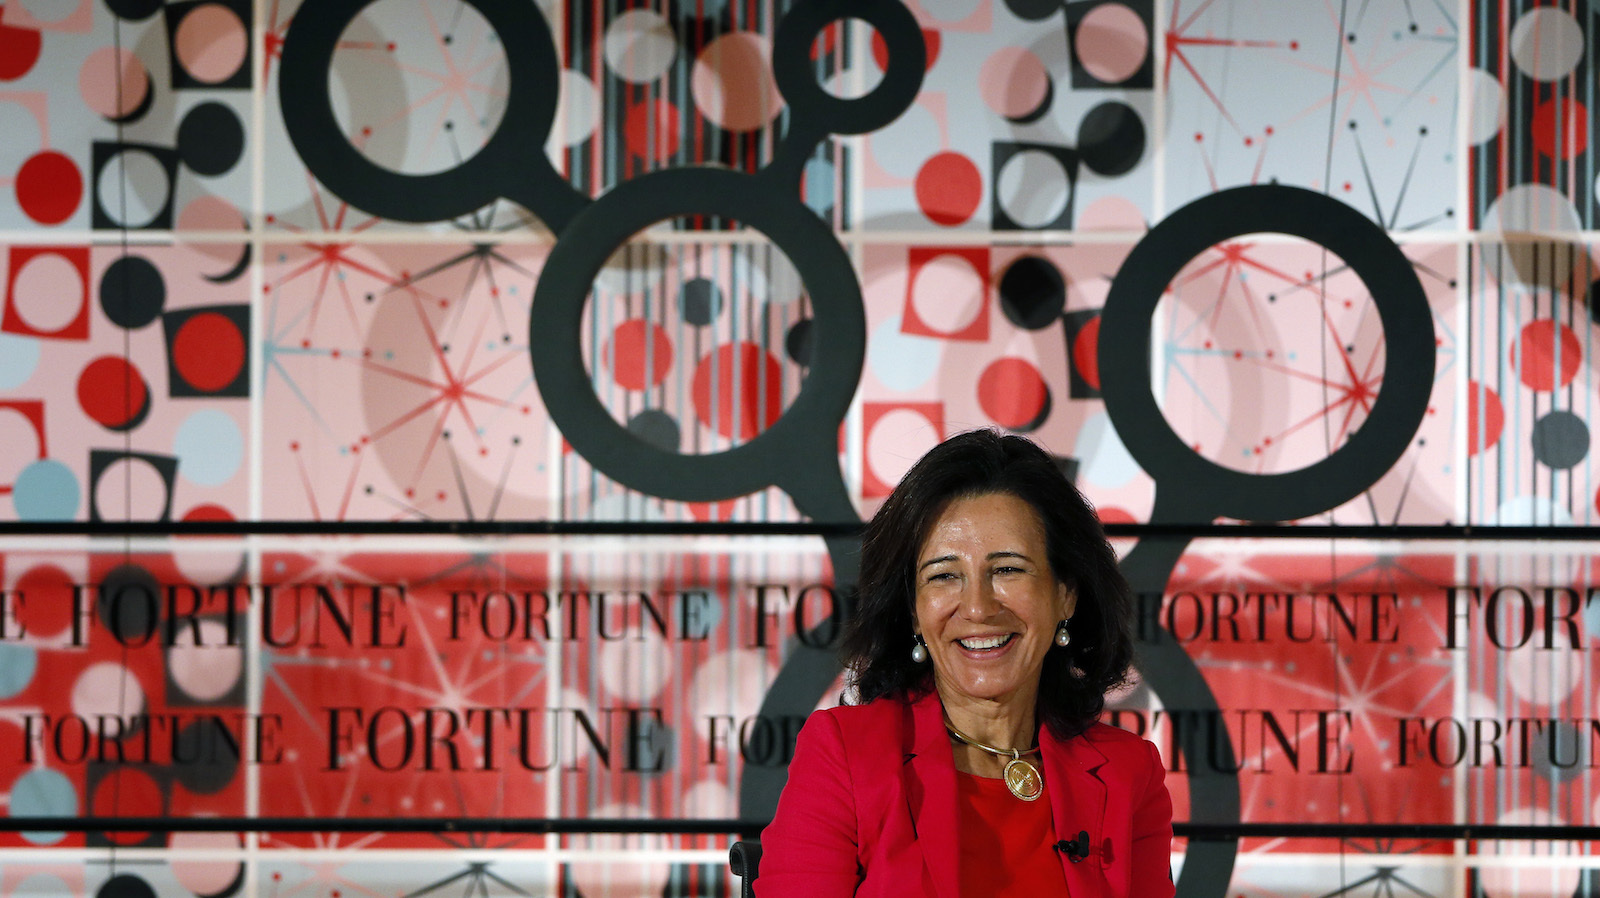 Ana Botin, the chair of Spain's largest bank Banco Santander attends the Most Powerful Women summit in London, Britain June 16, 2015.  REUTERS/Stefan Wermuth